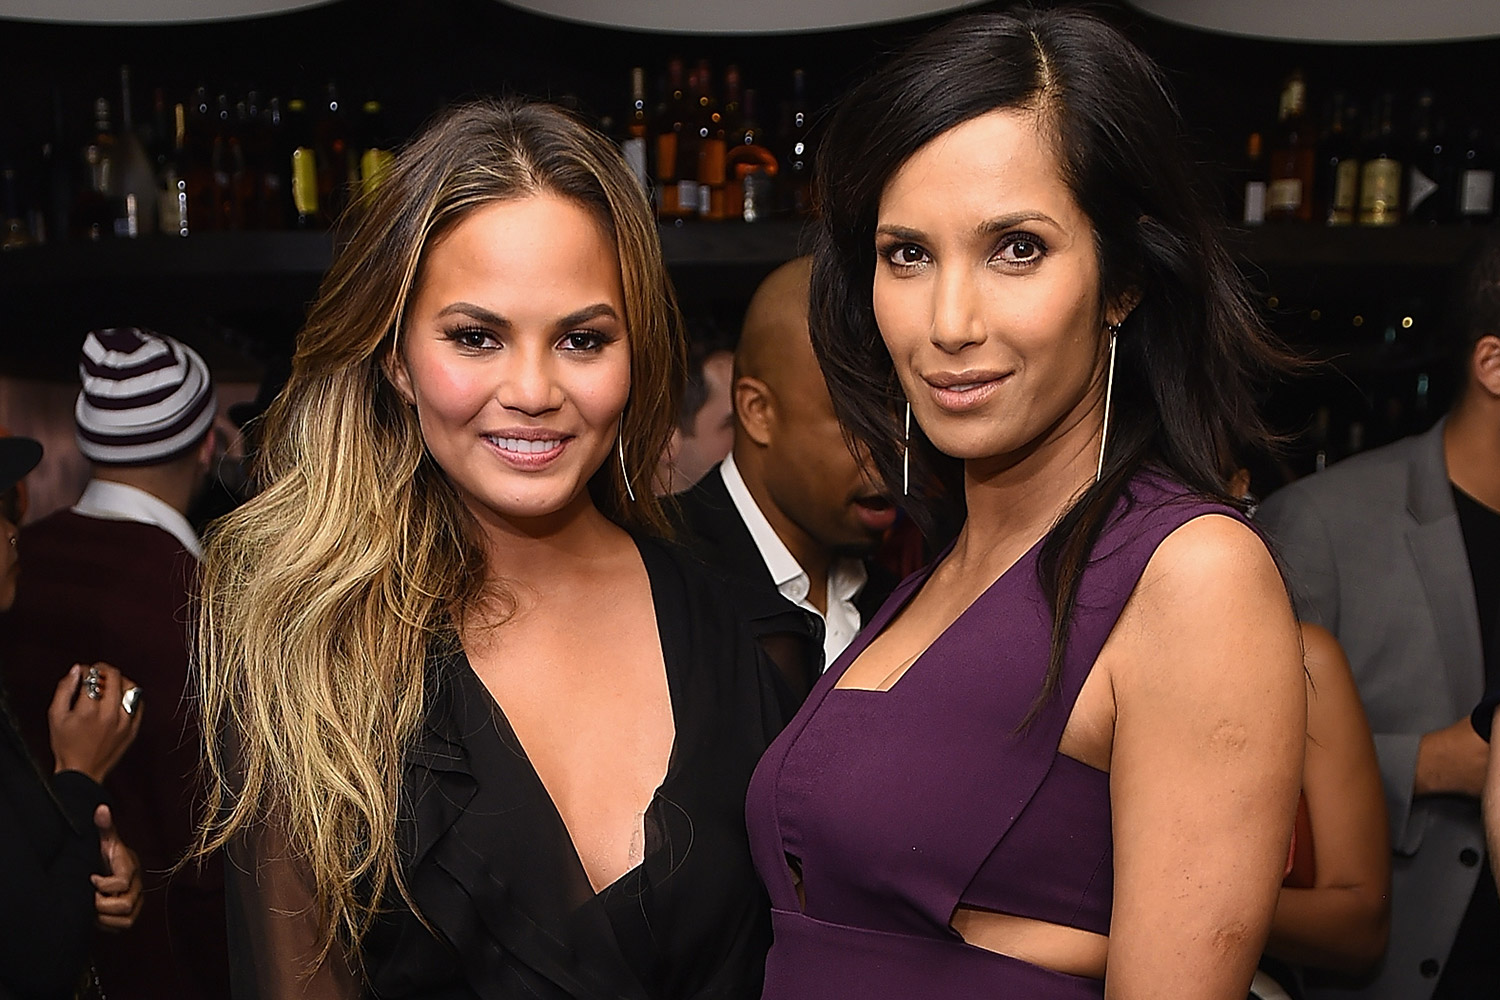 Chrissy Teigen and Padma Lakshmi